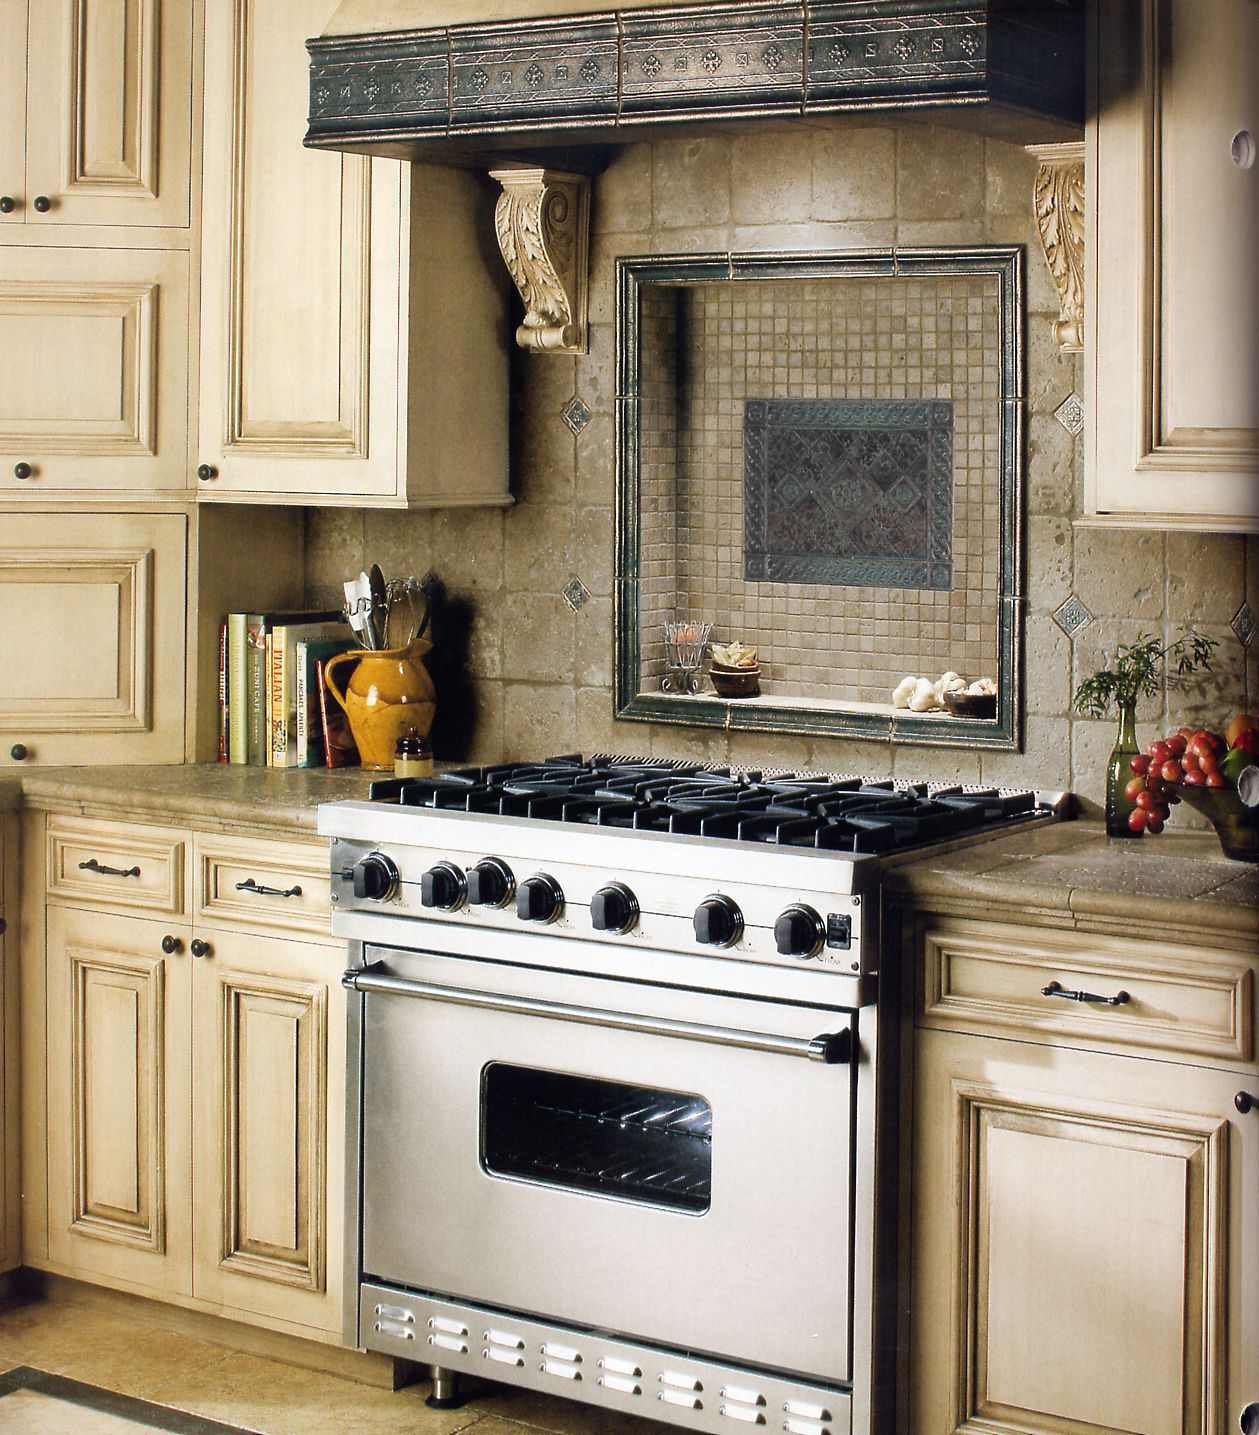 Kitchen Design Range Hood: Kitchen Hood With Regard To Kitchen Vent Hood Inserts How